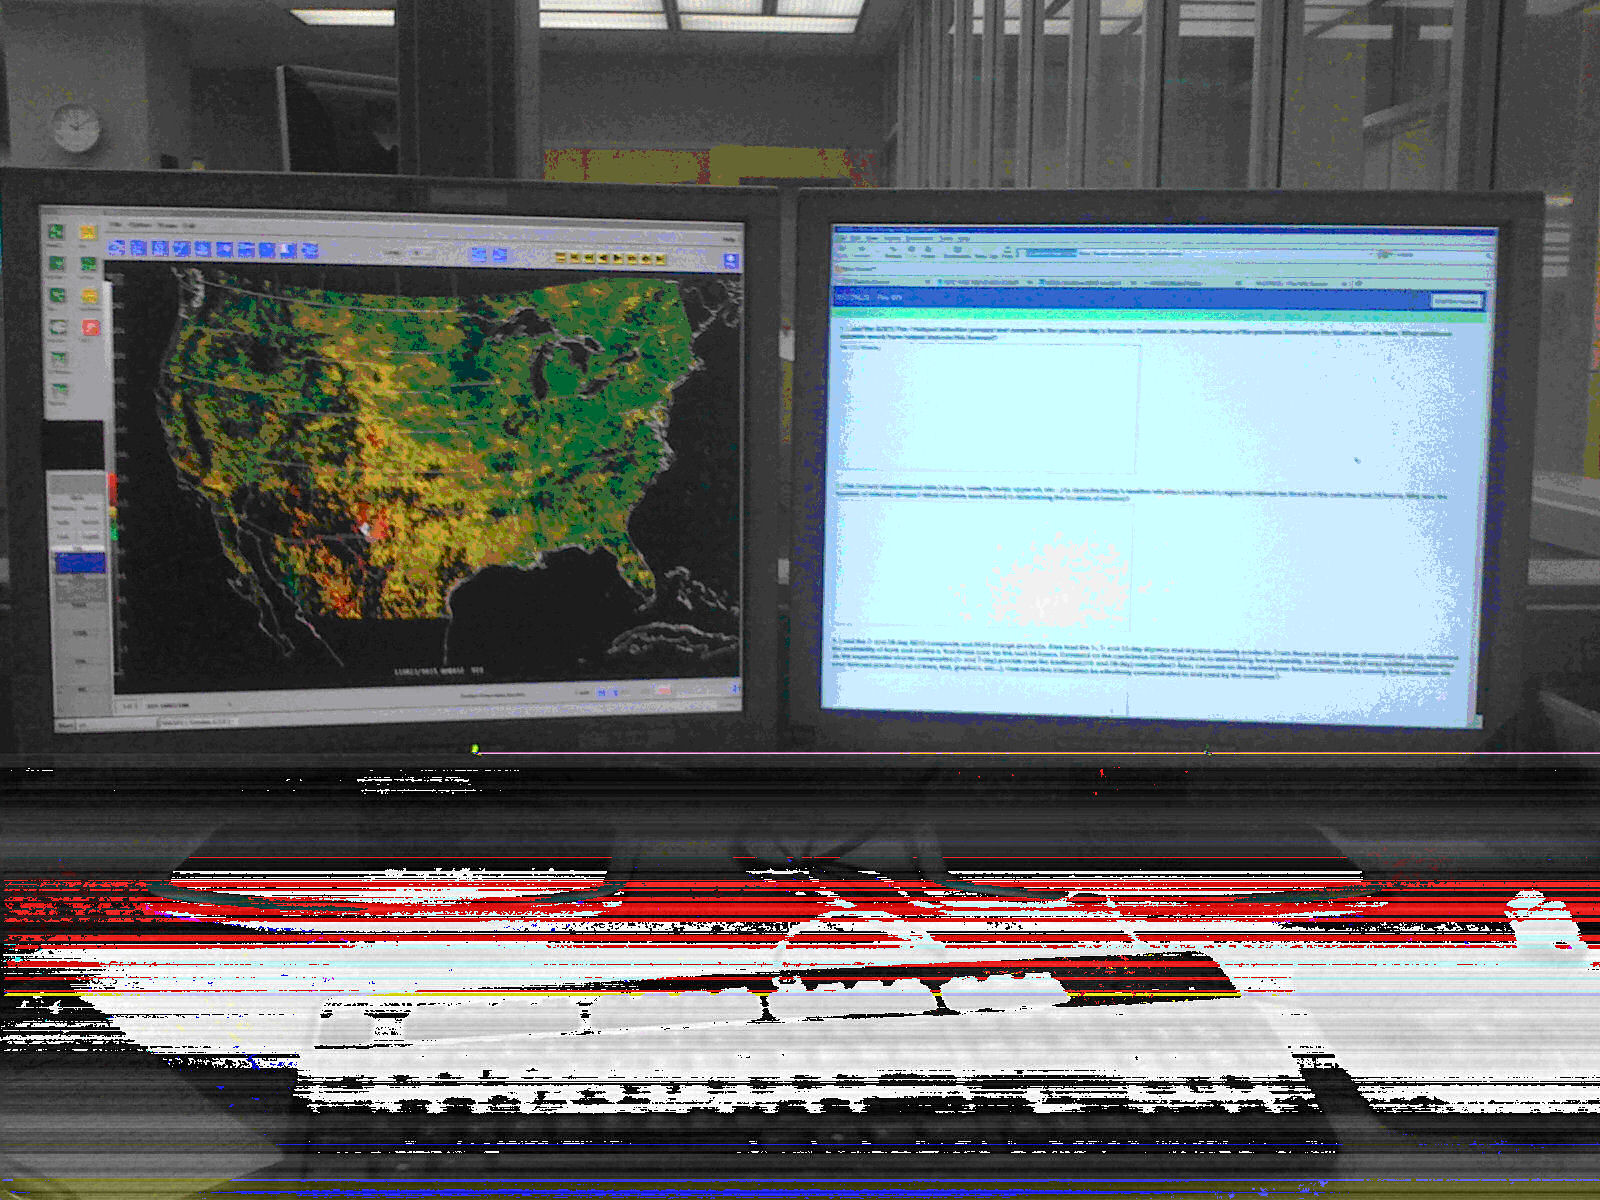 Fig. 2 – HWT N-AWIPS workstation with experimental GOES surface dryness (left panel) and online forecast discussion / feedback form (right panel) used during the 2011 fire weather experiment.